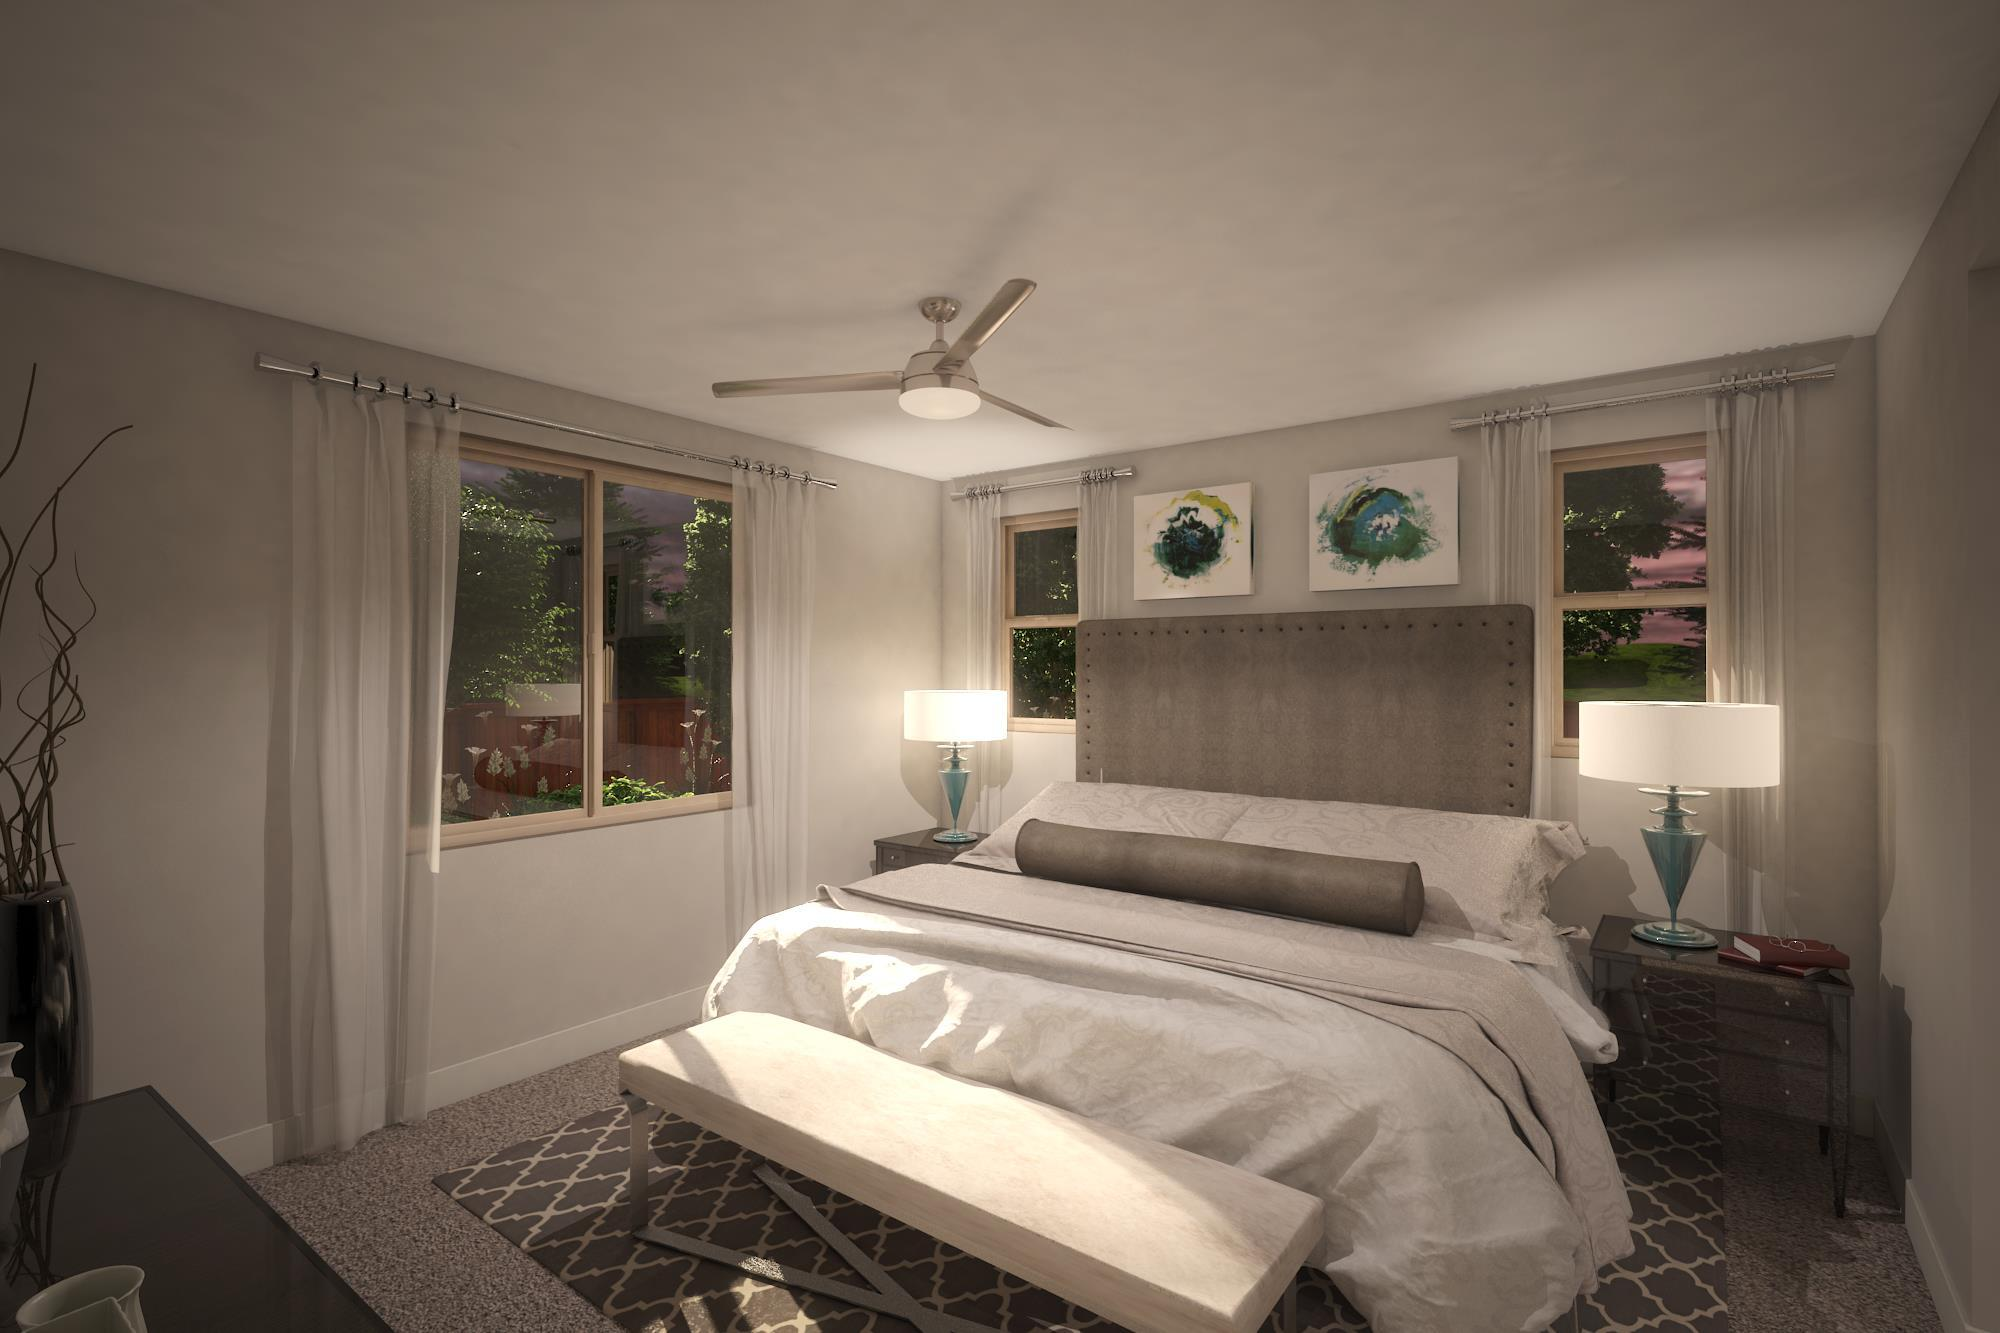 Bedroom featured in the Plan 3- 1739 By Jenuane Communities in Reno, NV